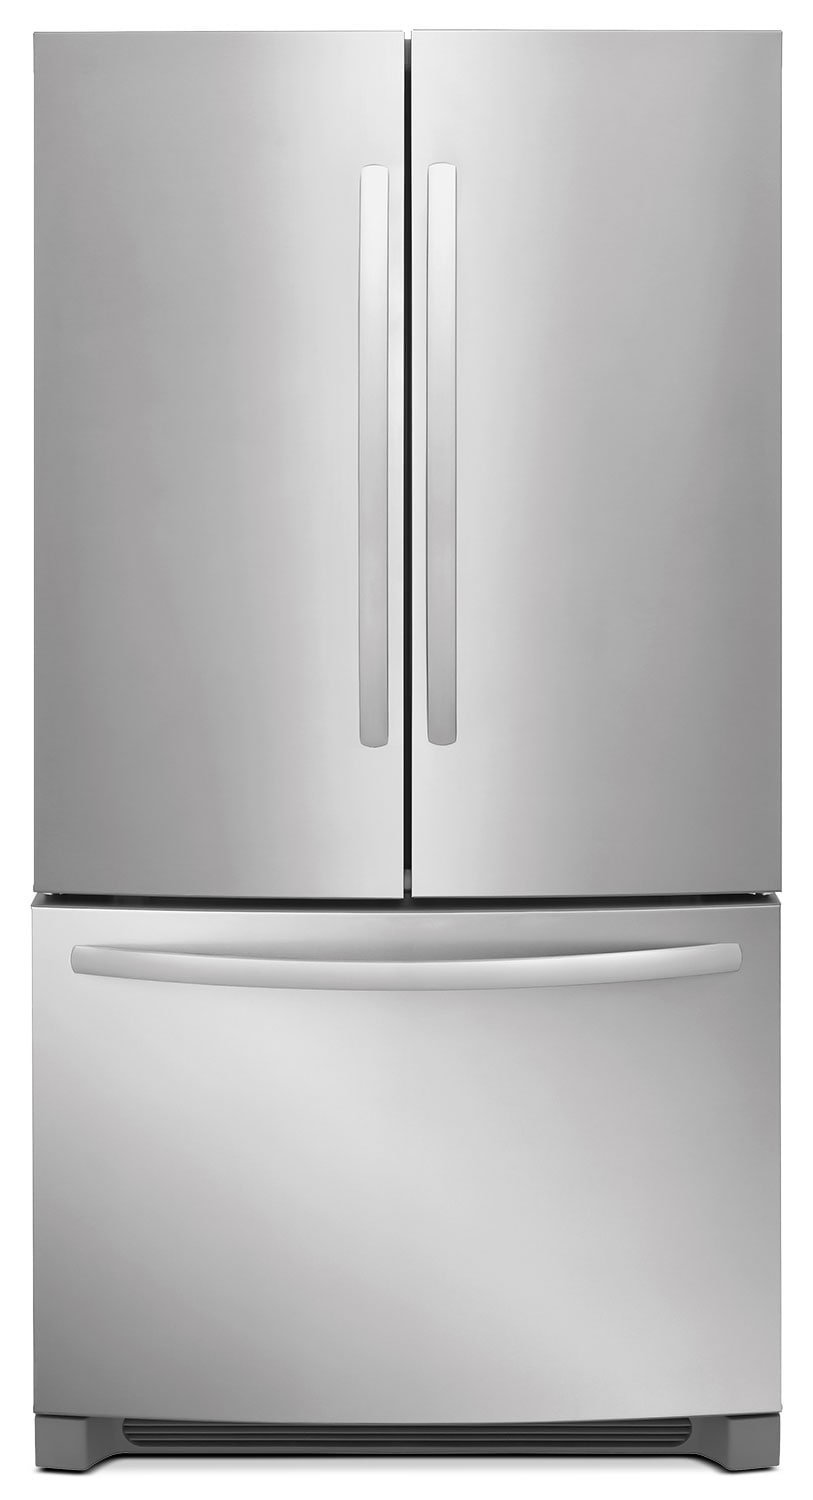 Frigidaire 27.6 Cu. Ft. French-Door Refrigerator – FFHN2750TS